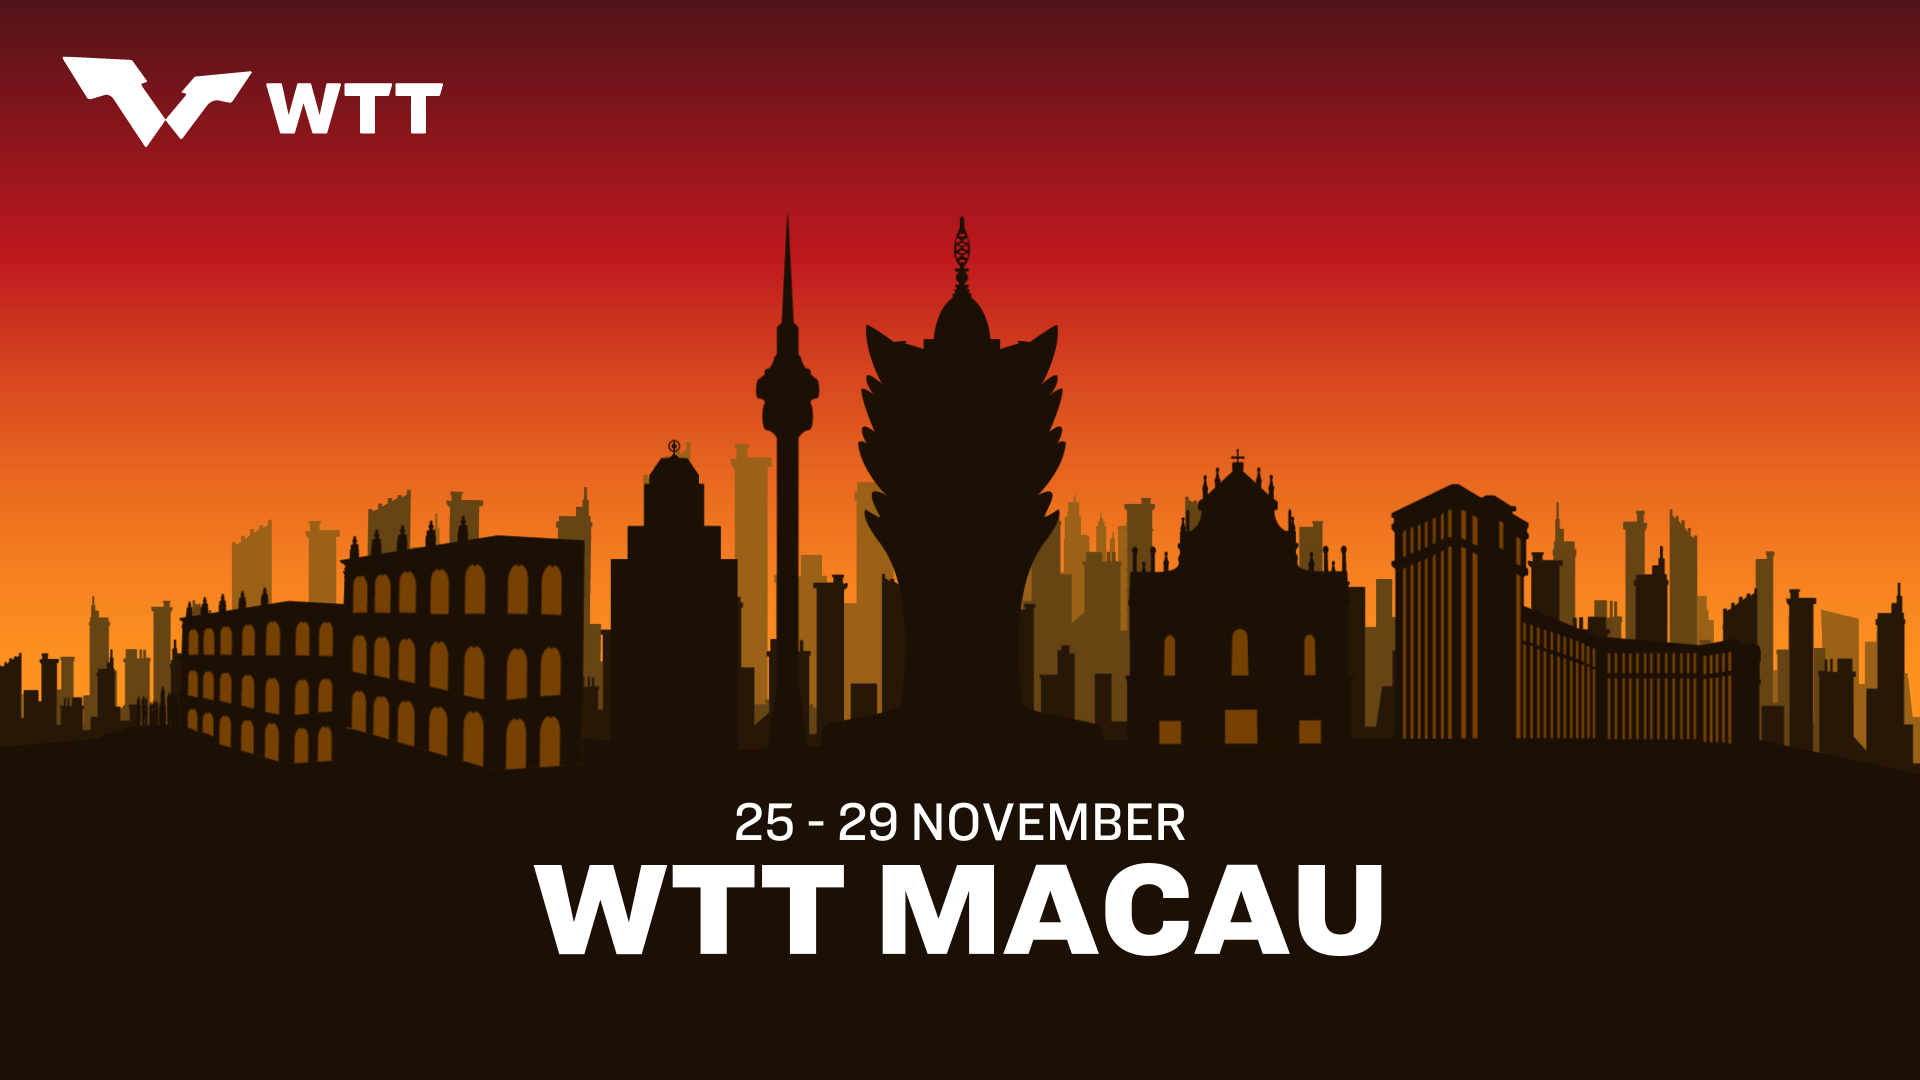 World Table Tennis to hold showcase event in Macau in November